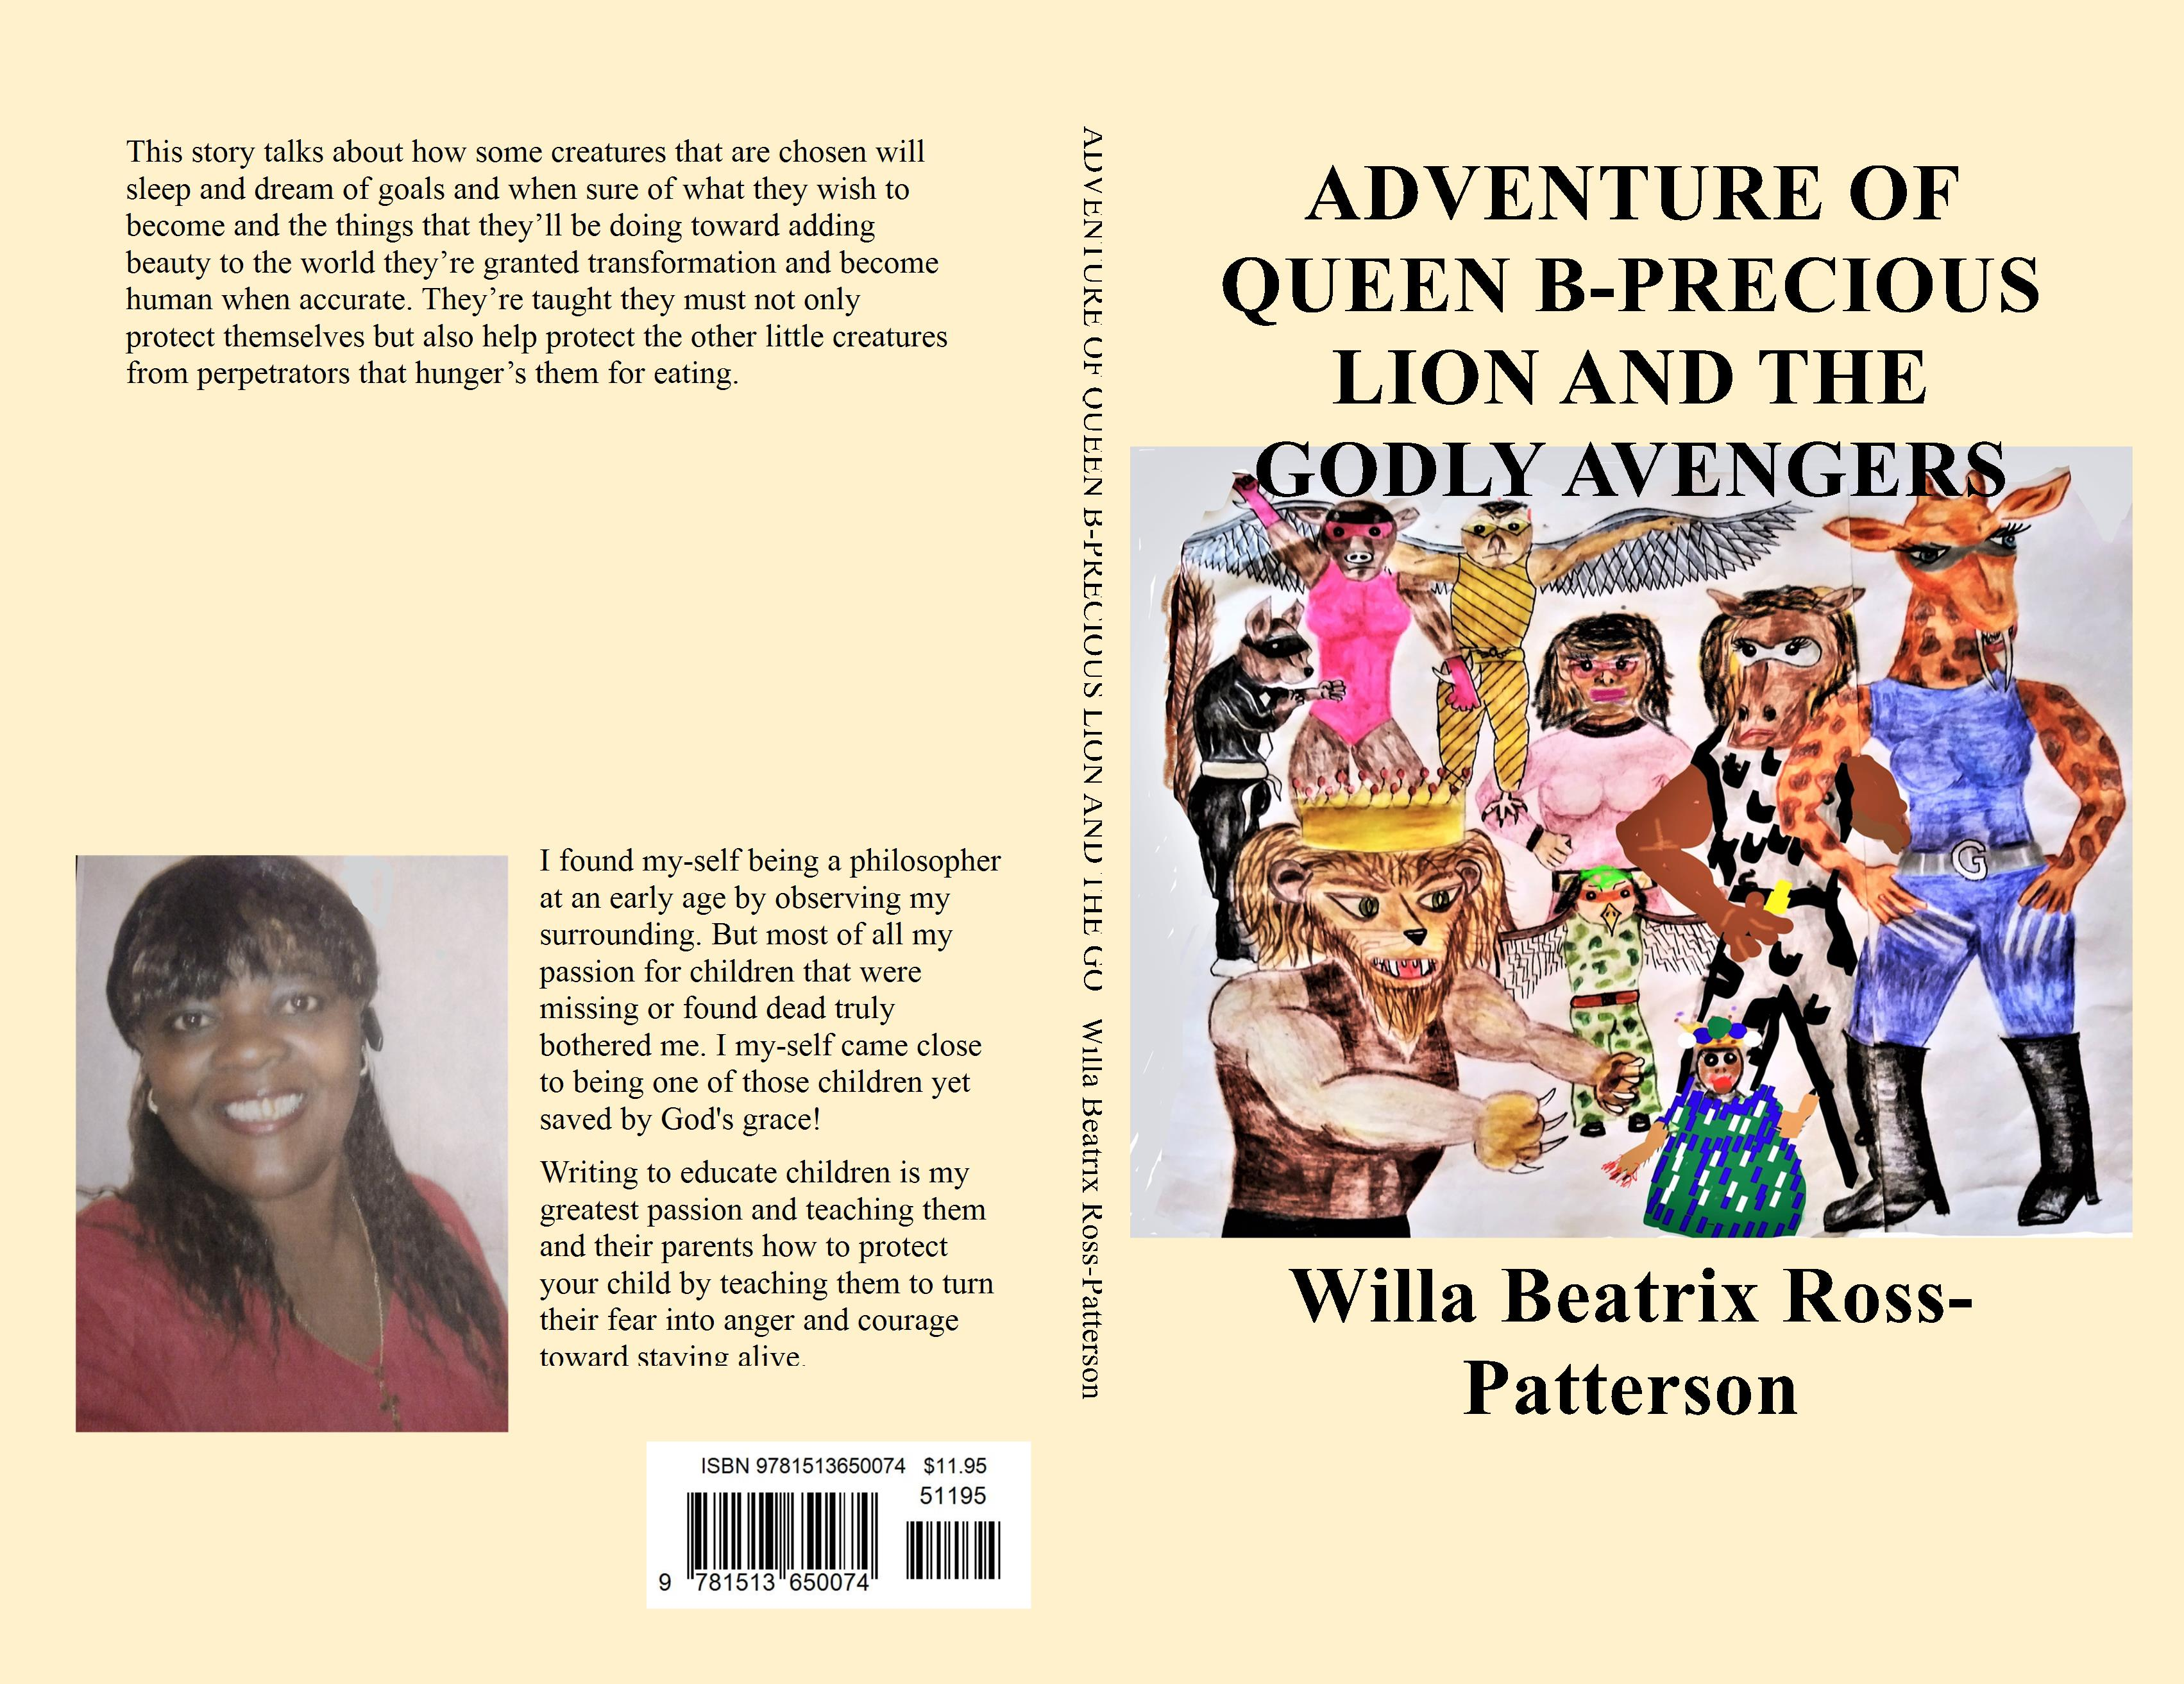 ADVENTURE OF QUEEN B-PRECIOUS LION AND THE GODLY AVENGERS cover image